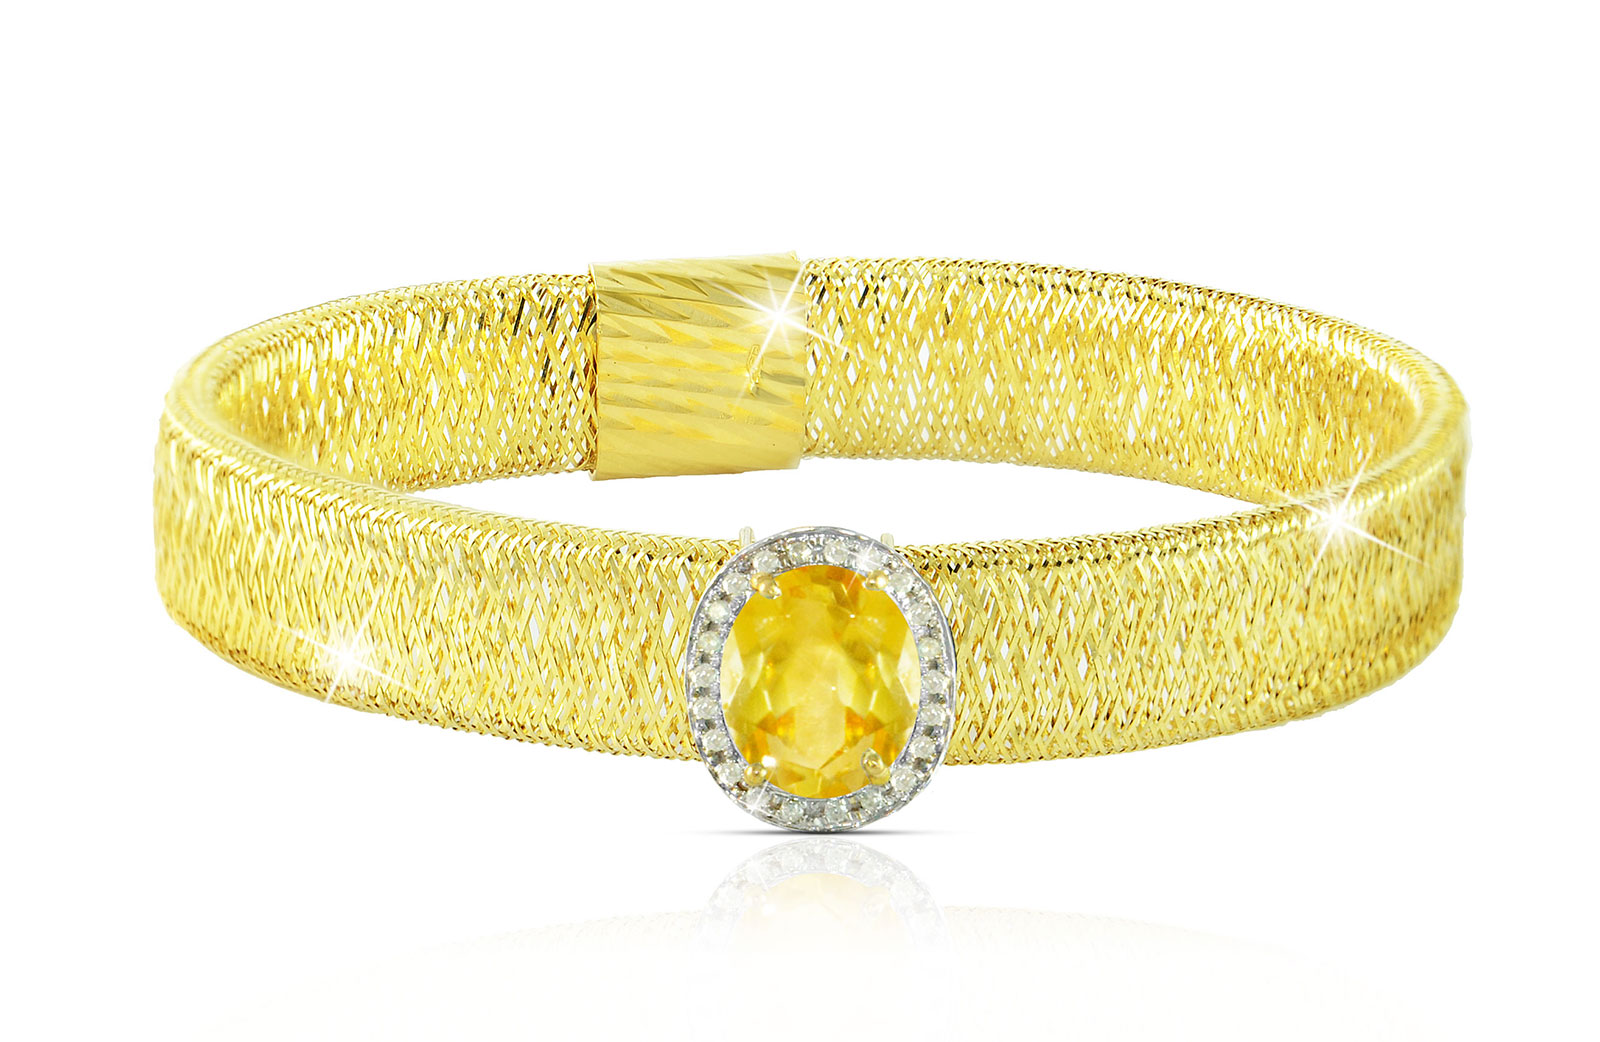 Vera Perla 18k  Gold 10mm Genuine Oval   Cut Citrine 0.12Ct Genuine Diamonds Bracelet